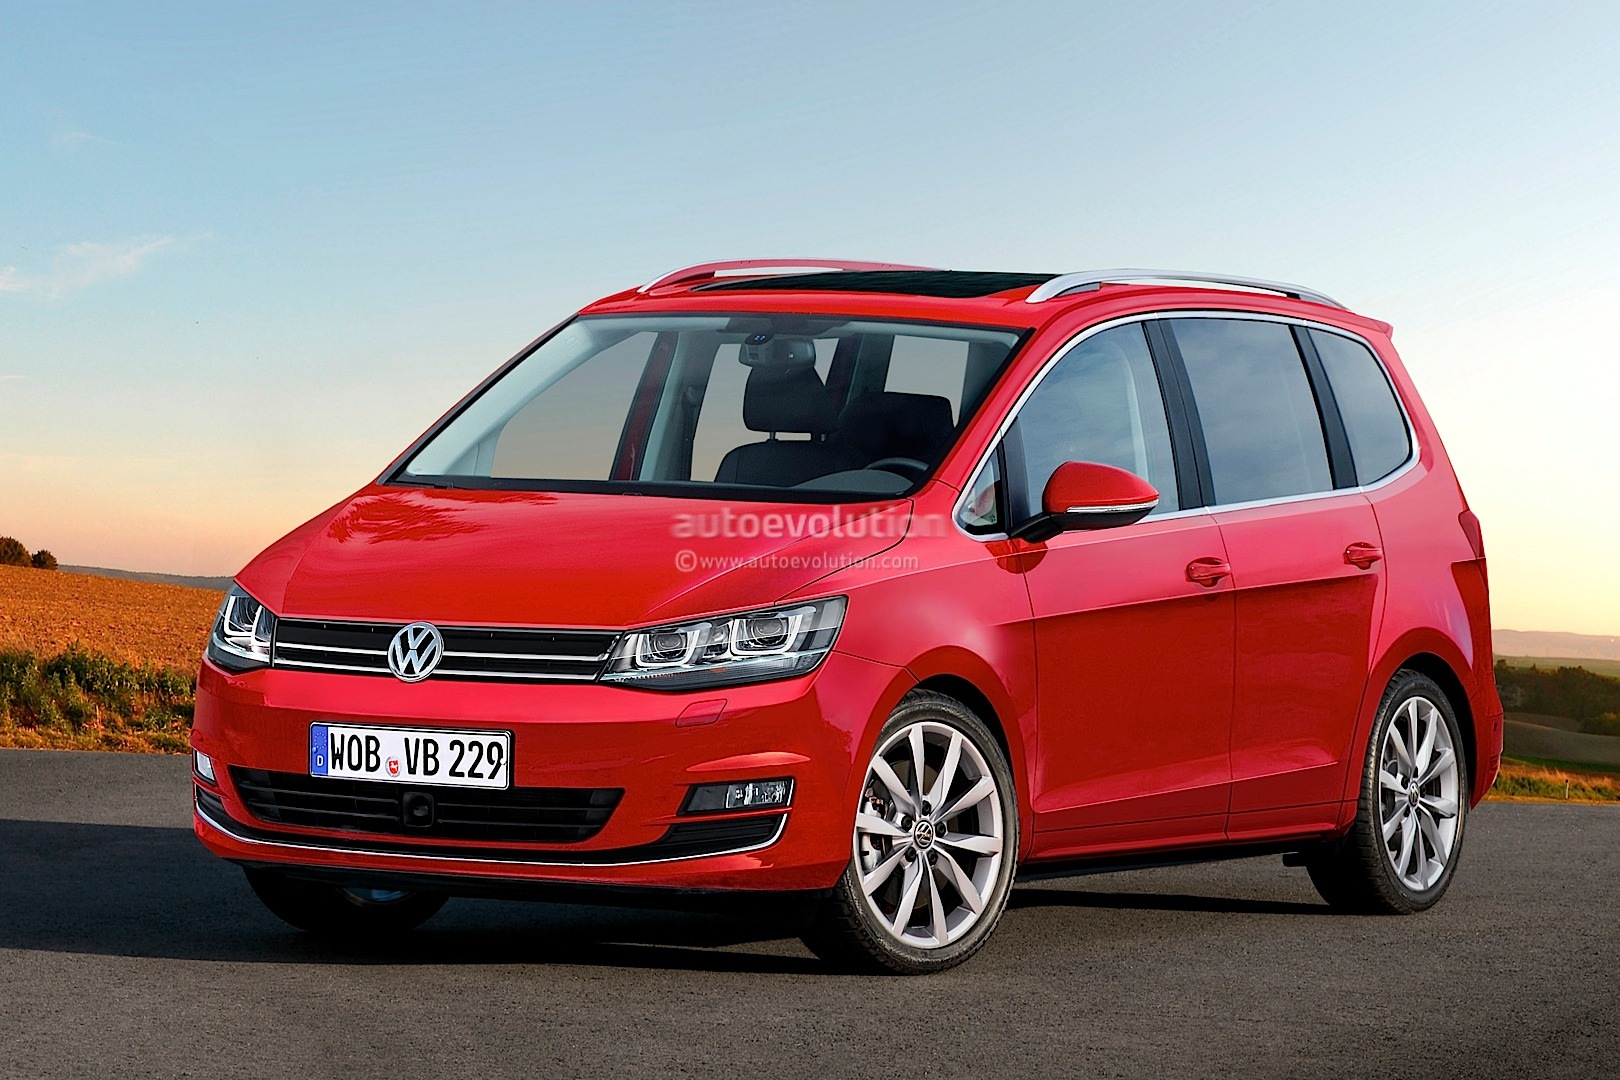 2014 volkswagen touran rendered looks ready for production autoevolution. Black Bedroom Furniture Sets. Home Design Ideas